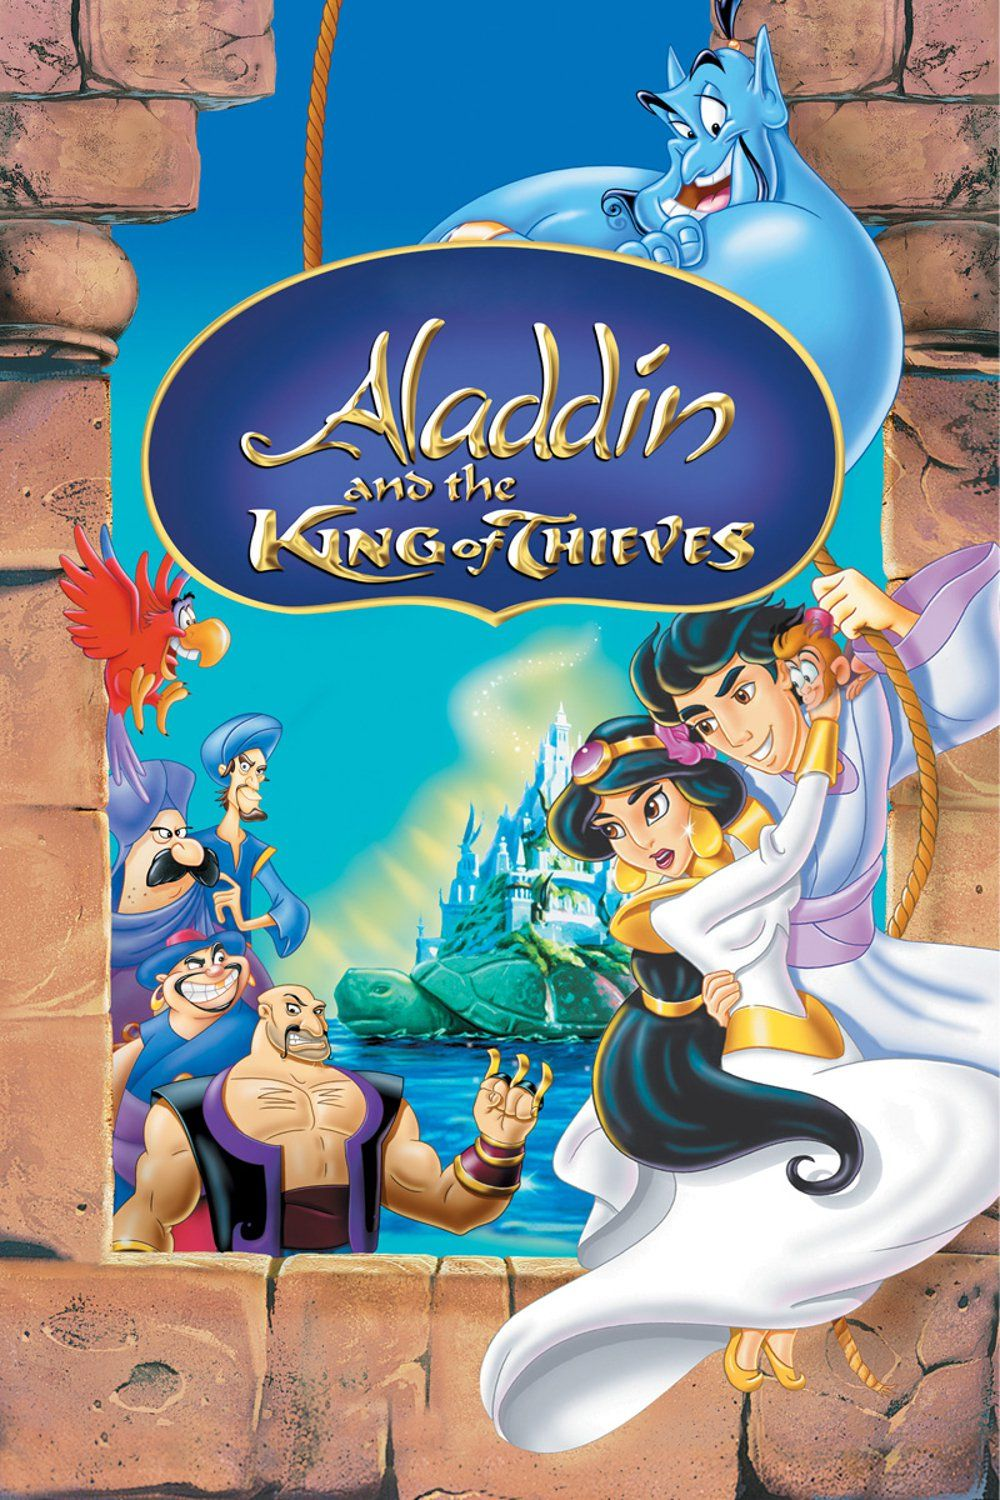 Aladdin And The King Of Theives The King Of Thieves Disrupts Aladdin And Jasmine S Long Anticipated Wedding Looking F Disney Movies Aladdin Disney Aladdin